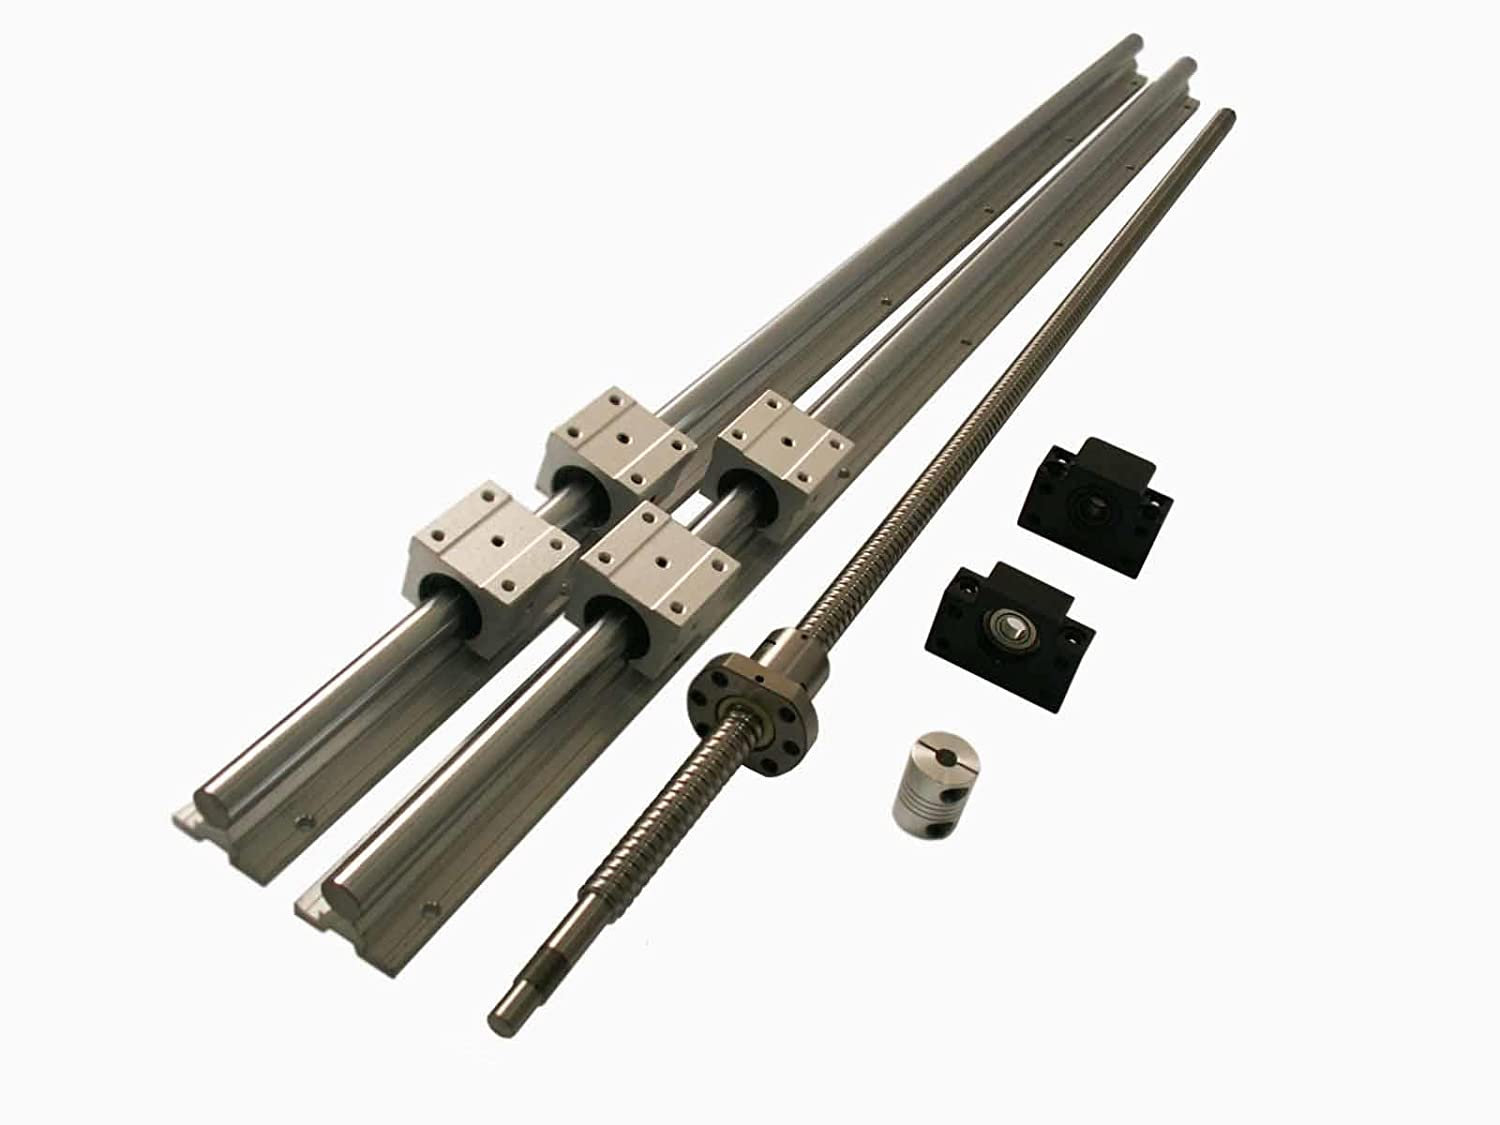 Ball screws 1605 with DOUBLE BALLNUT for CNC 20mm Linear guide rail carriages